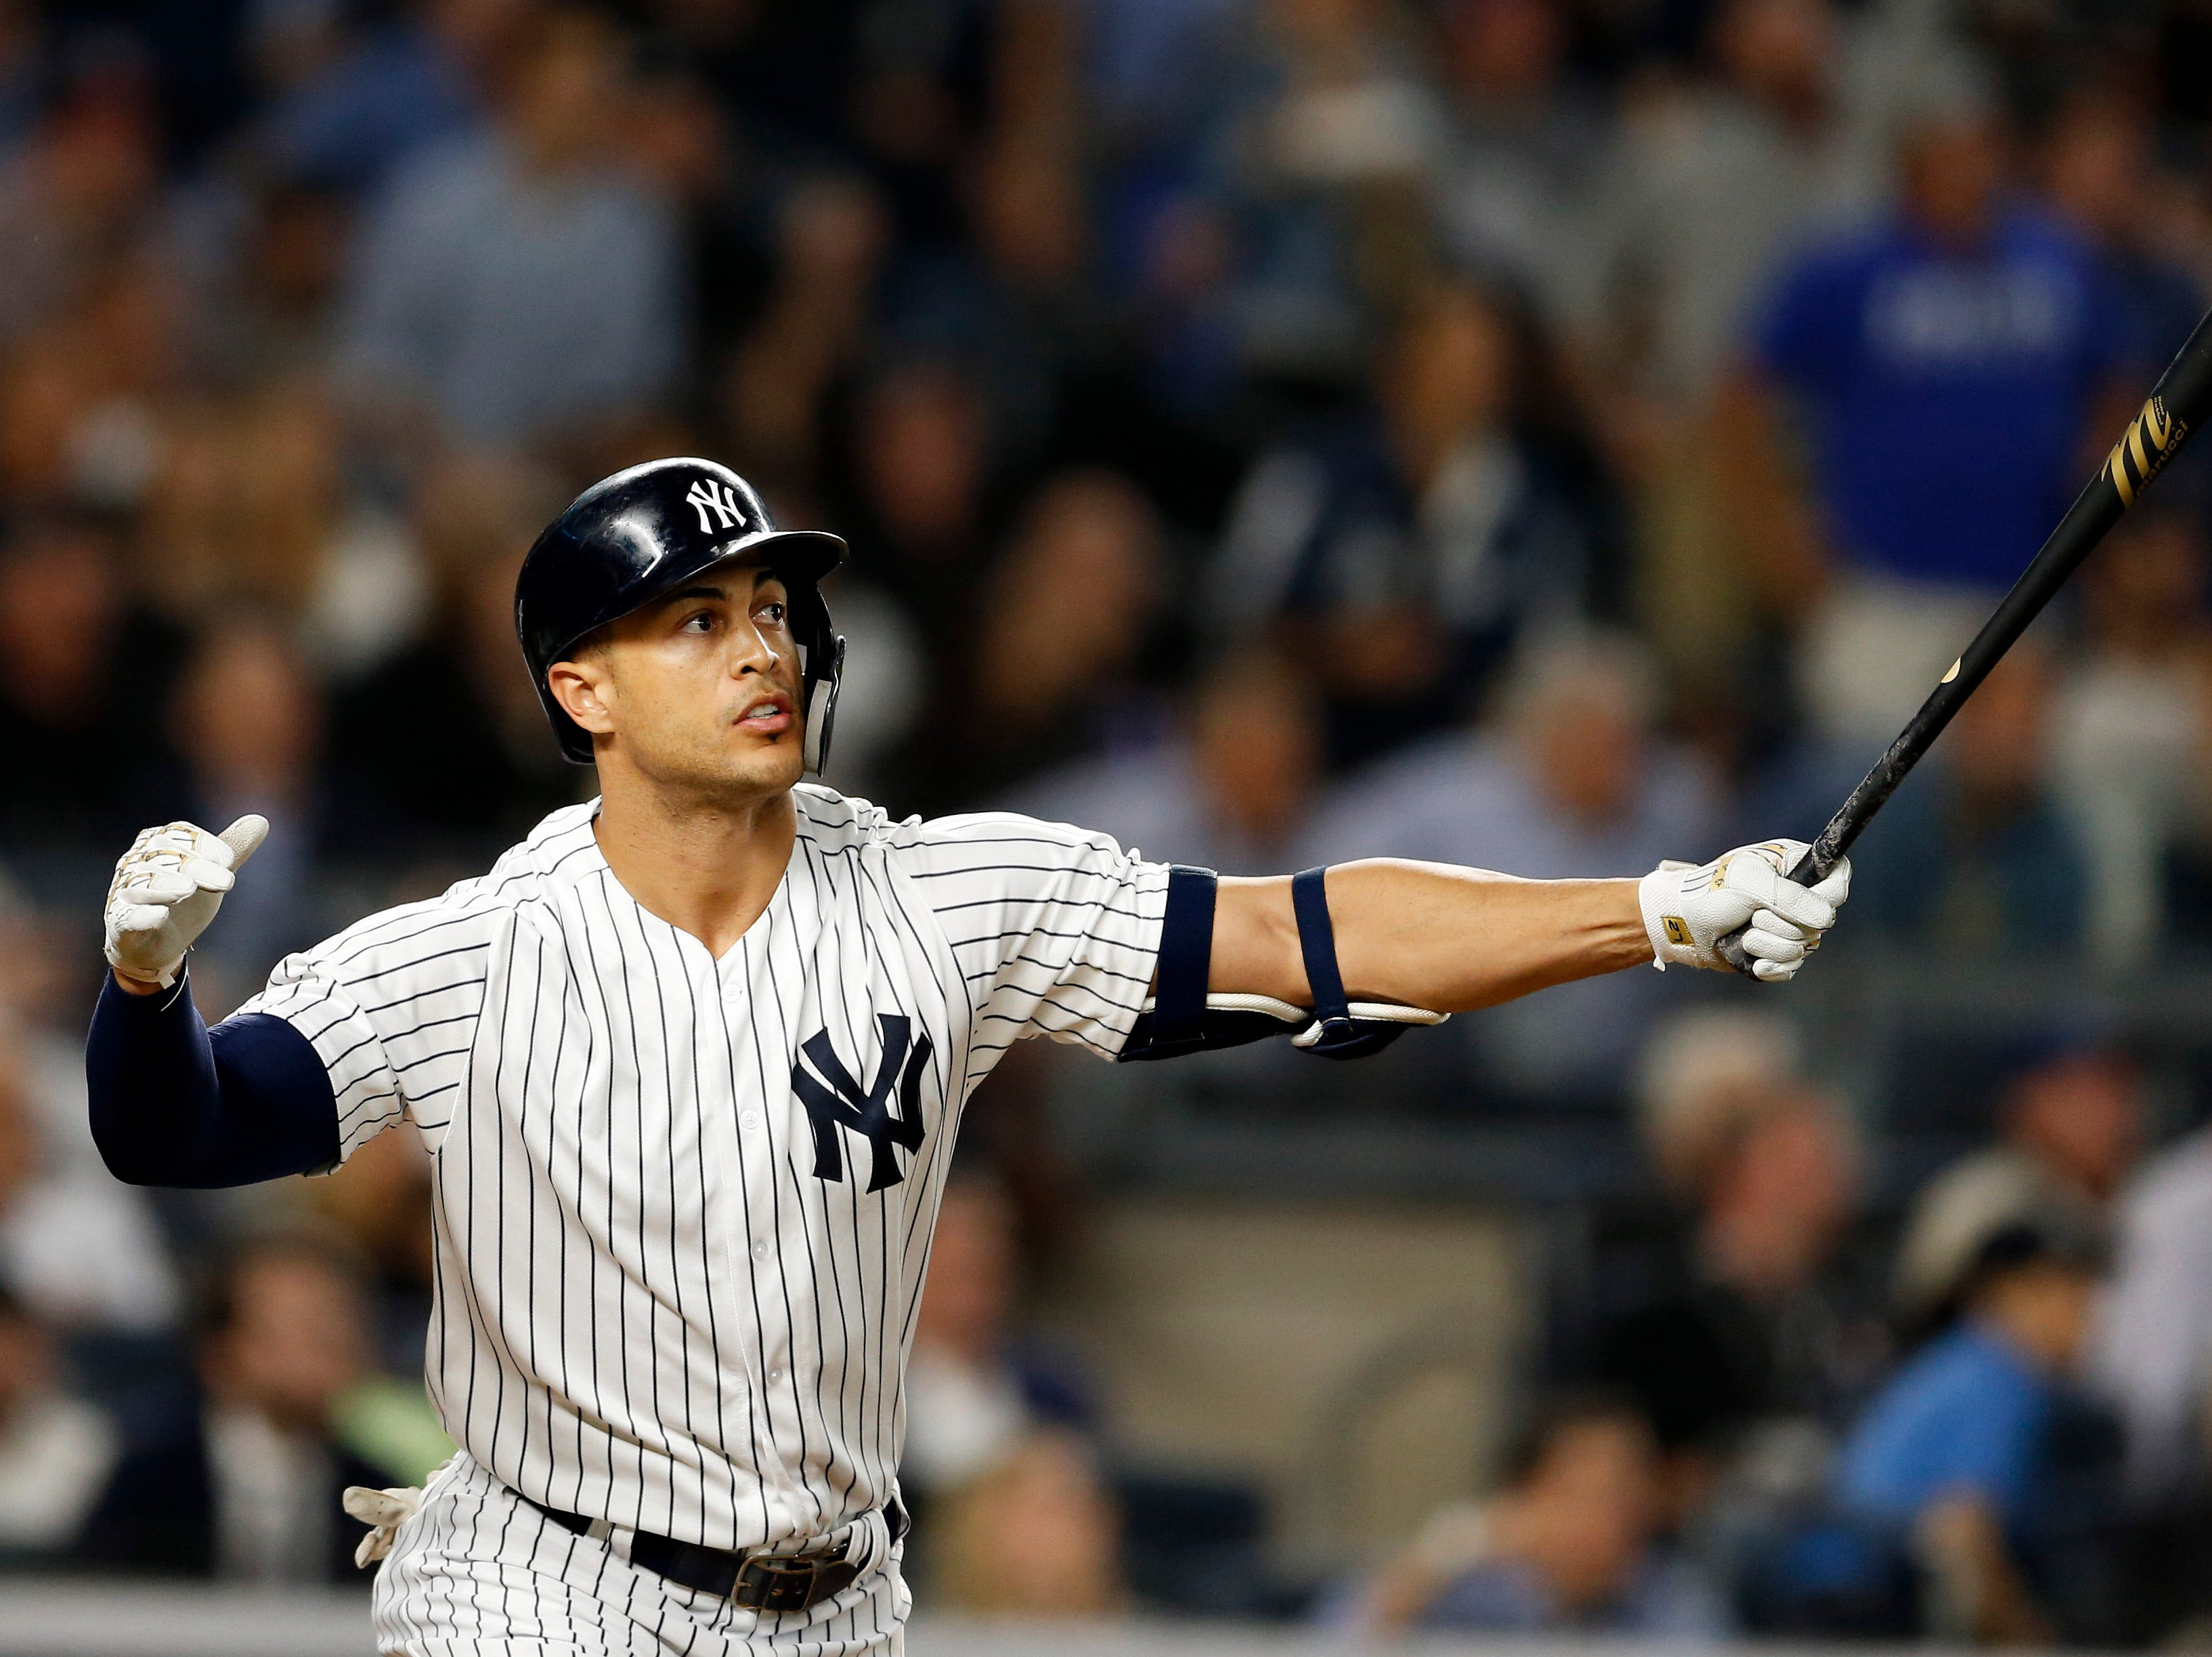 19. Giancarlo Stanton, New York Yankees outfielder.